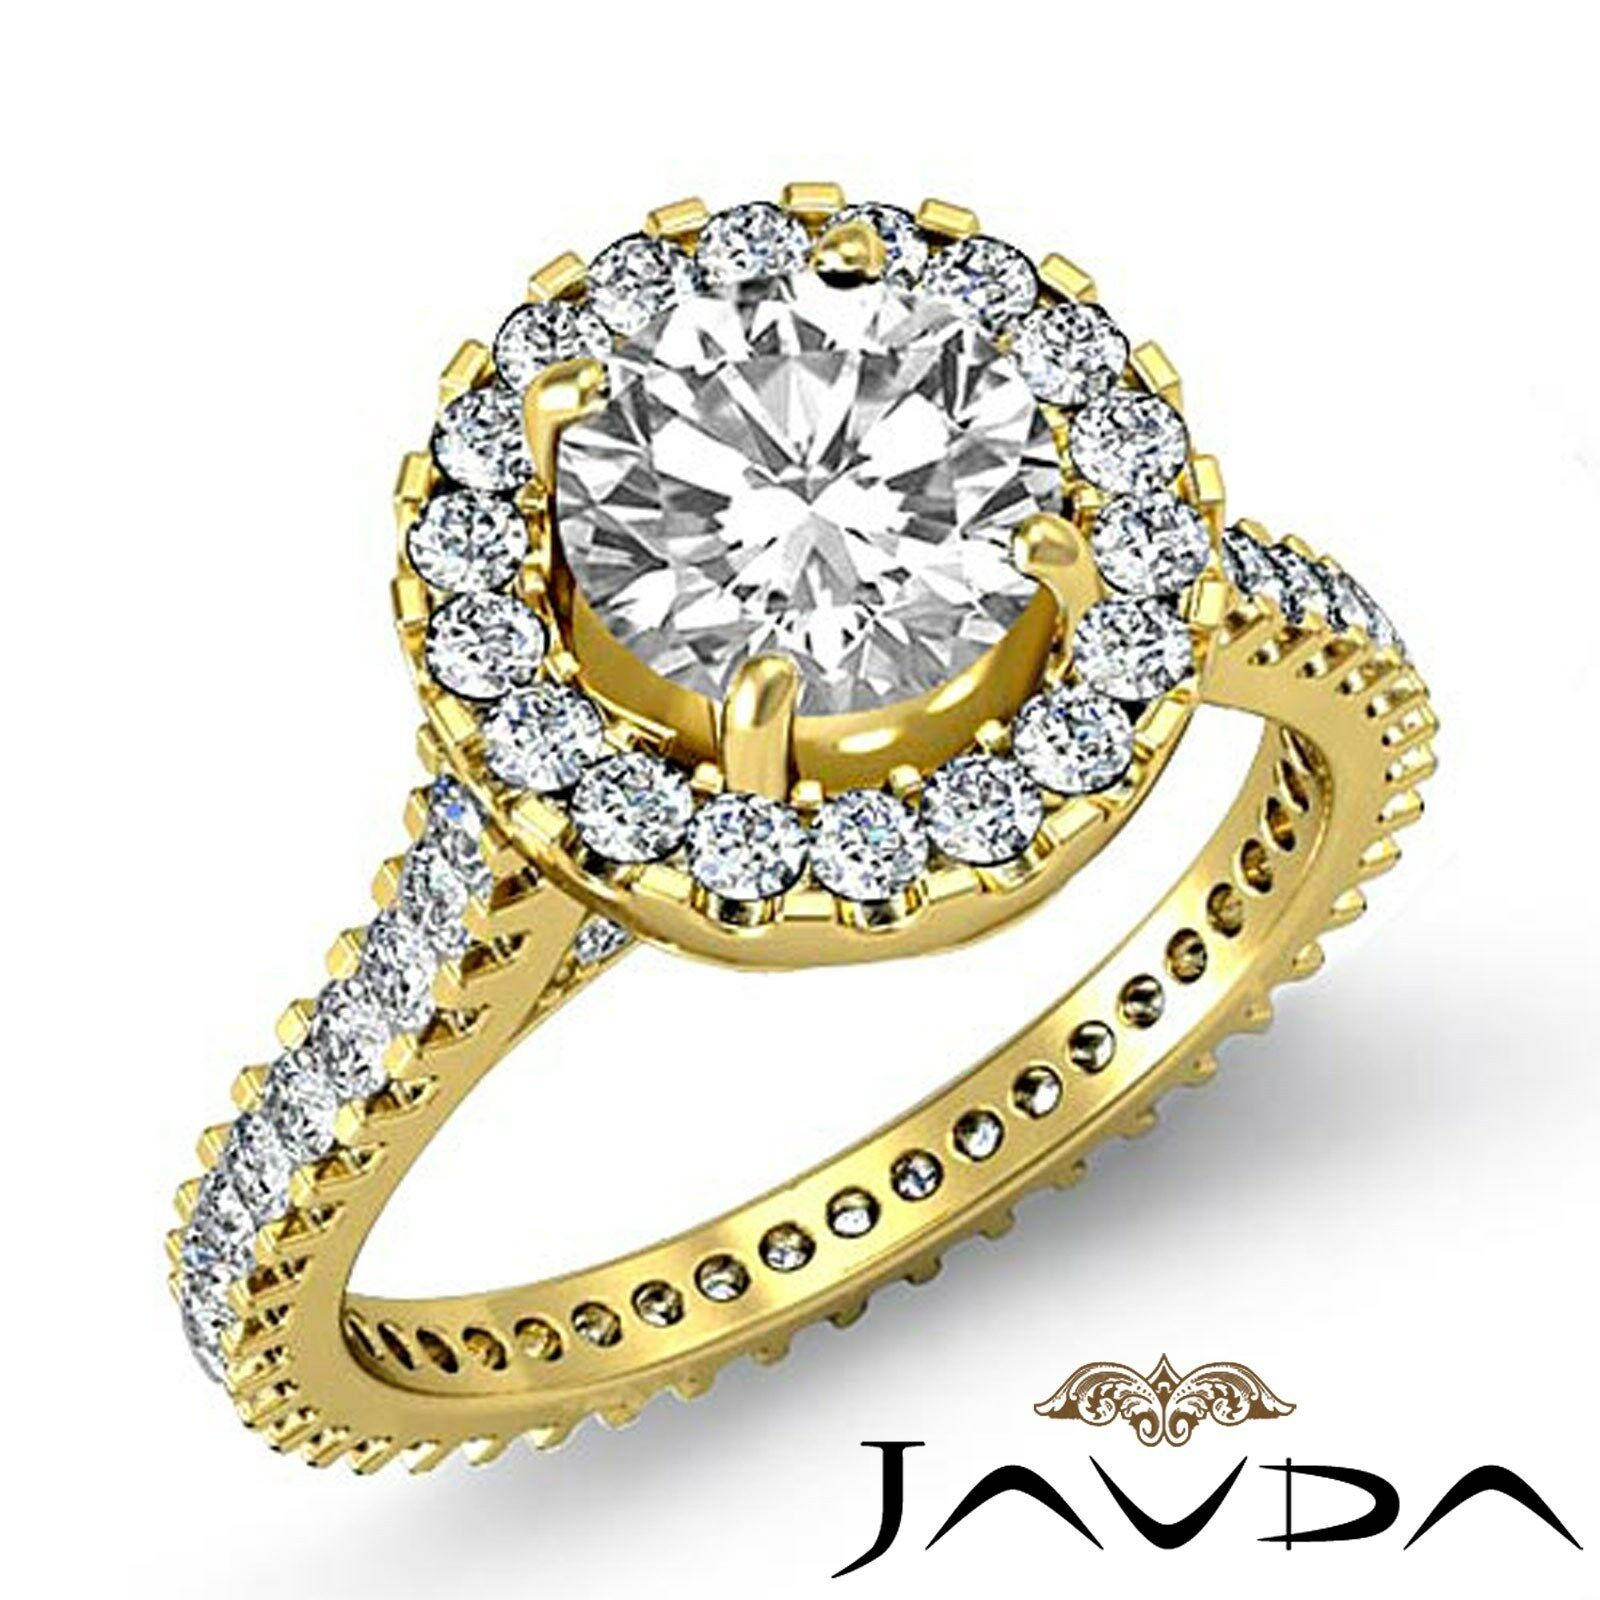 Halo Shared Prong Round Shape Diamond Engagement Yellow Gold Ring GIA F VS1 3Ct